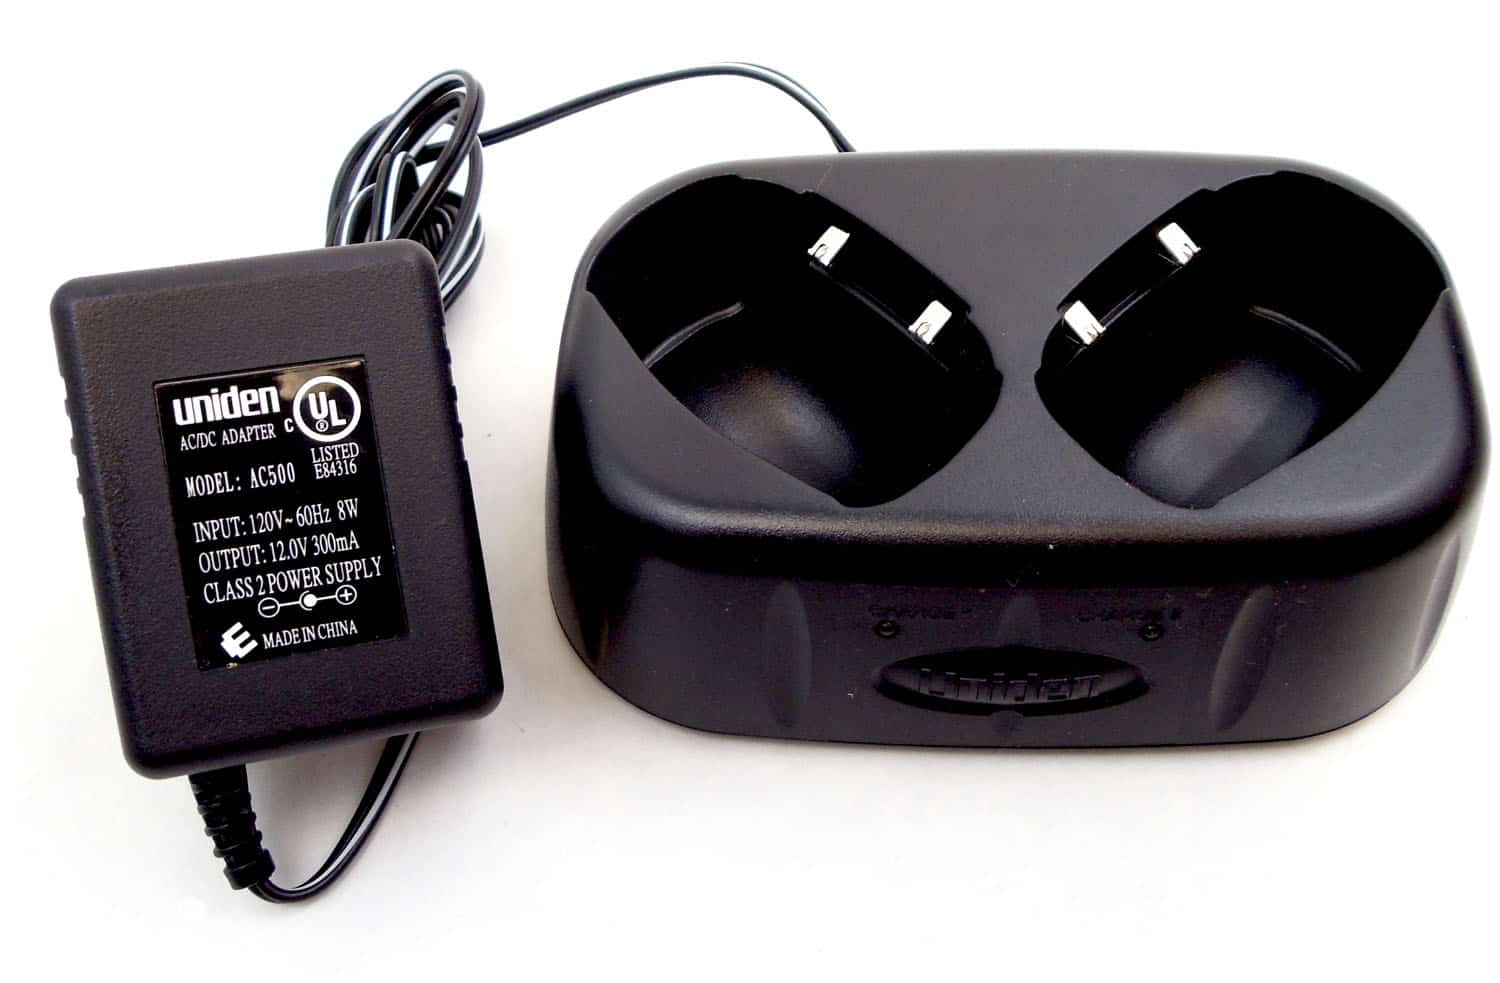 RC5248 - Uniden Dual Port Drop-In Charger